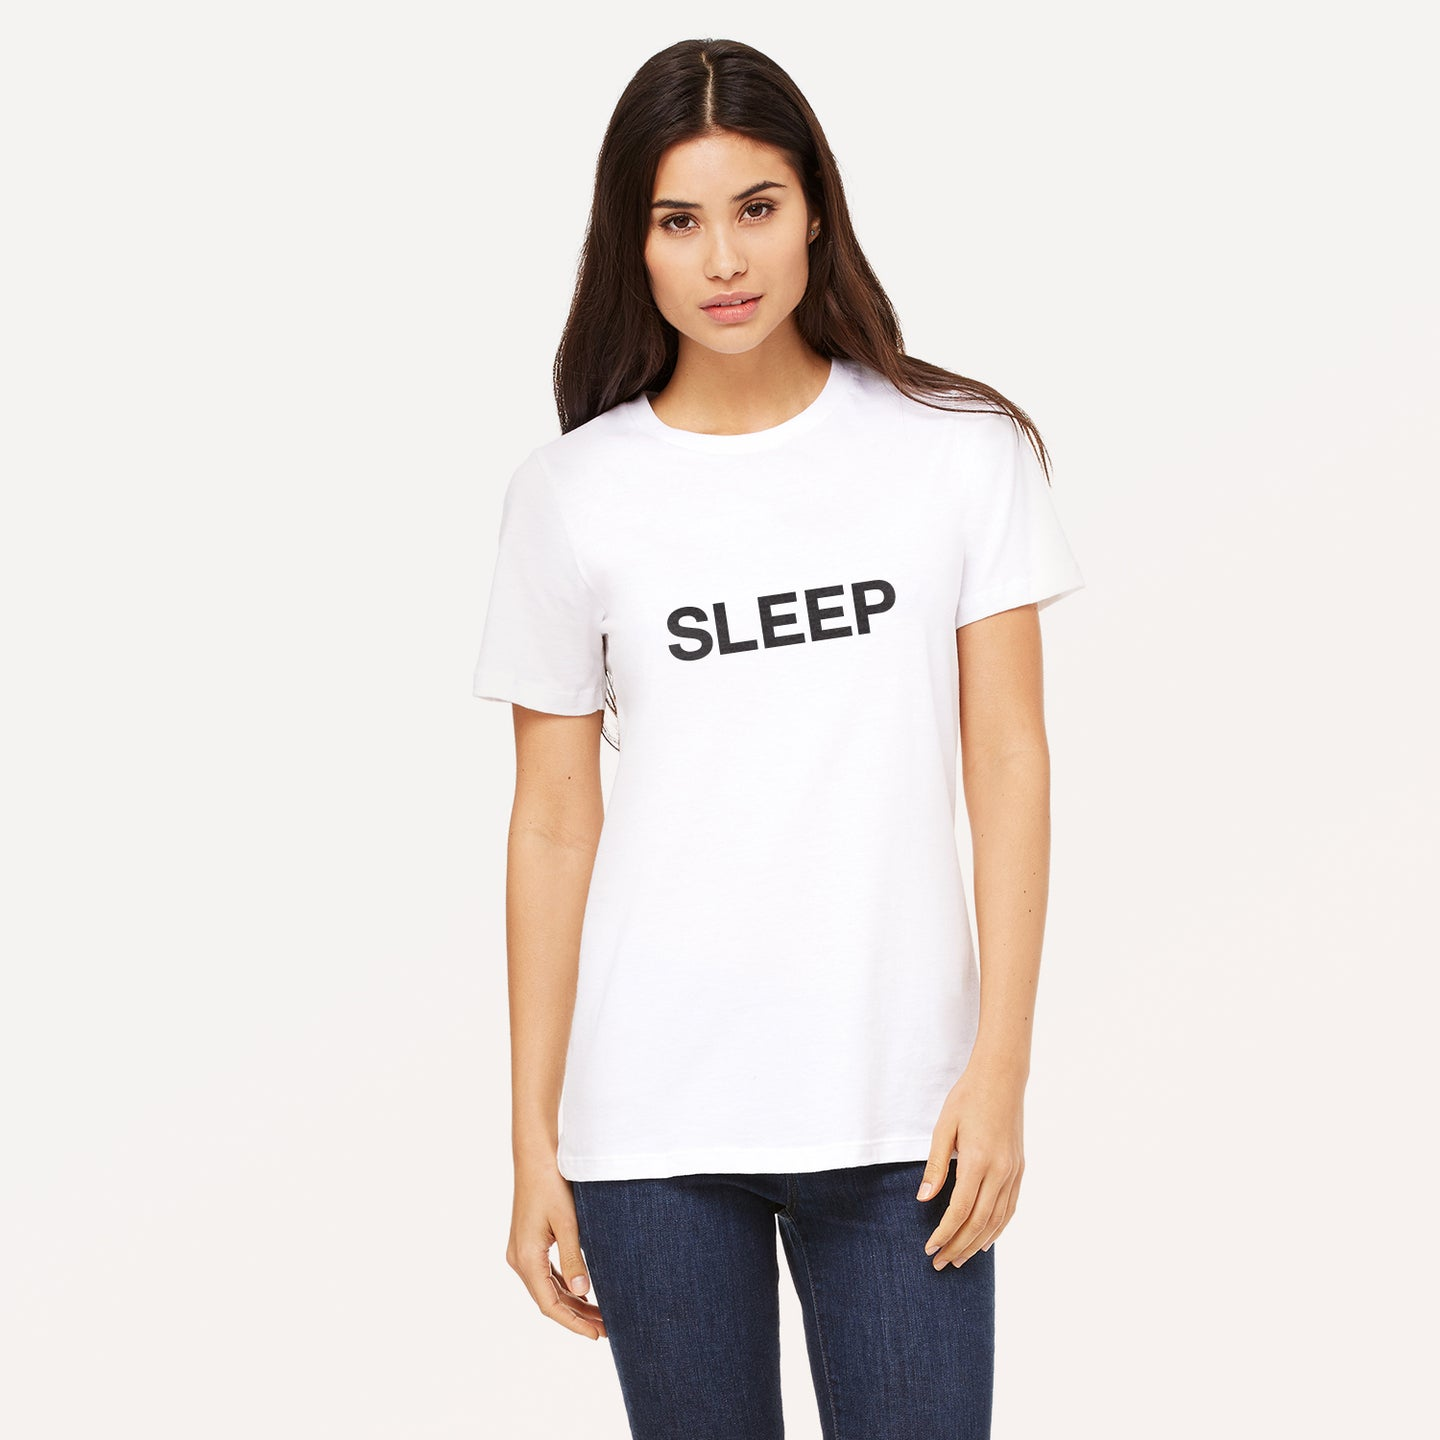 Sleep graphic screenprinted in black on the front of a white unisex relaxed cotton jersey t-shirt.